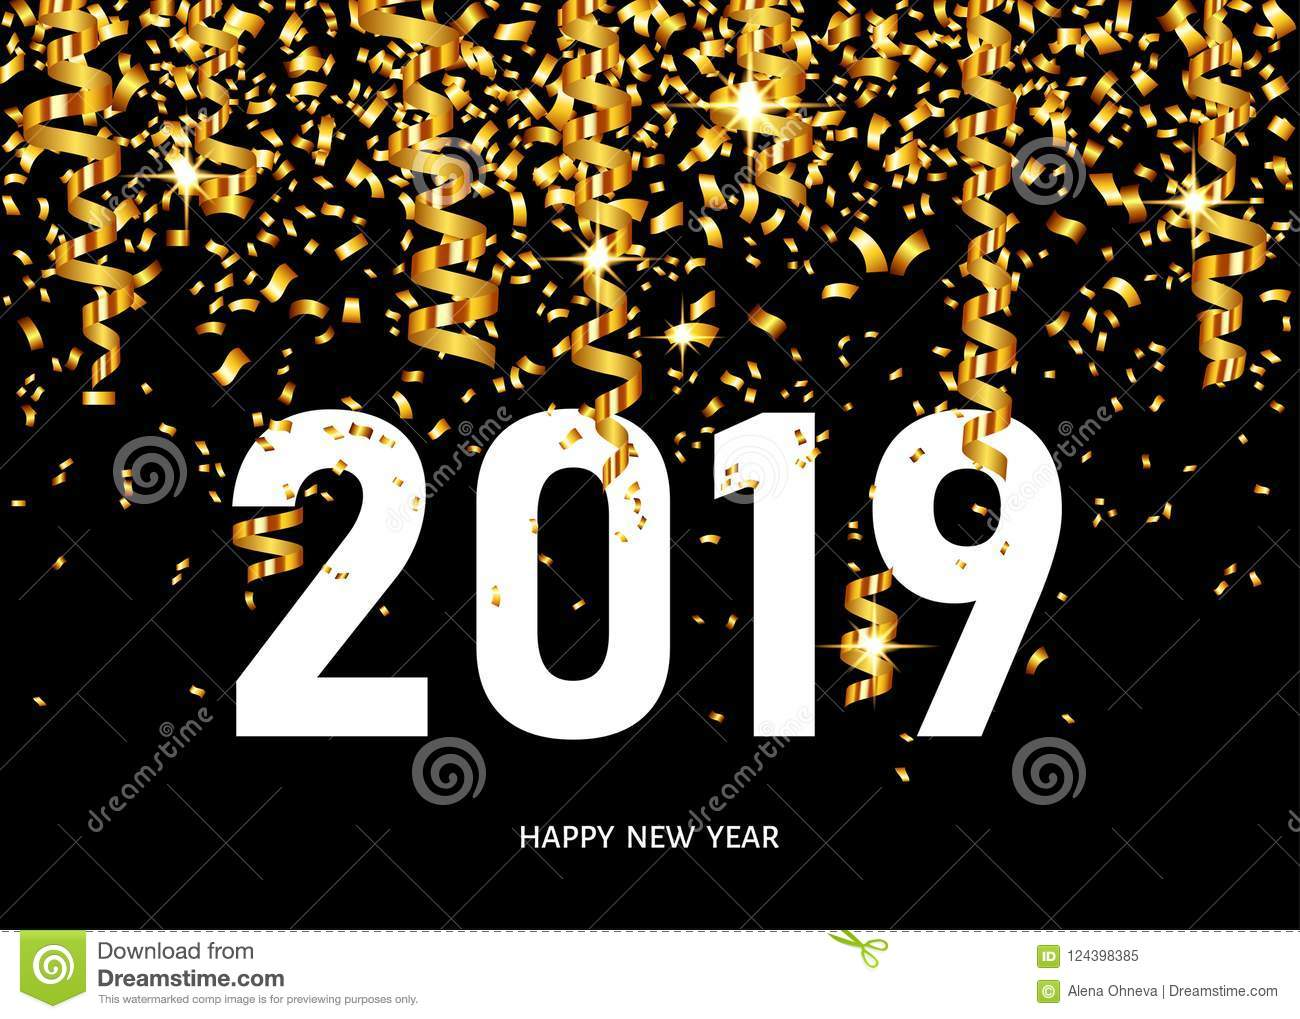 2019 happy new year greeting card with golden confetti stock vector download 2019 happy new year greeting card with golden confetti stock vector illustration of m4hsunfo